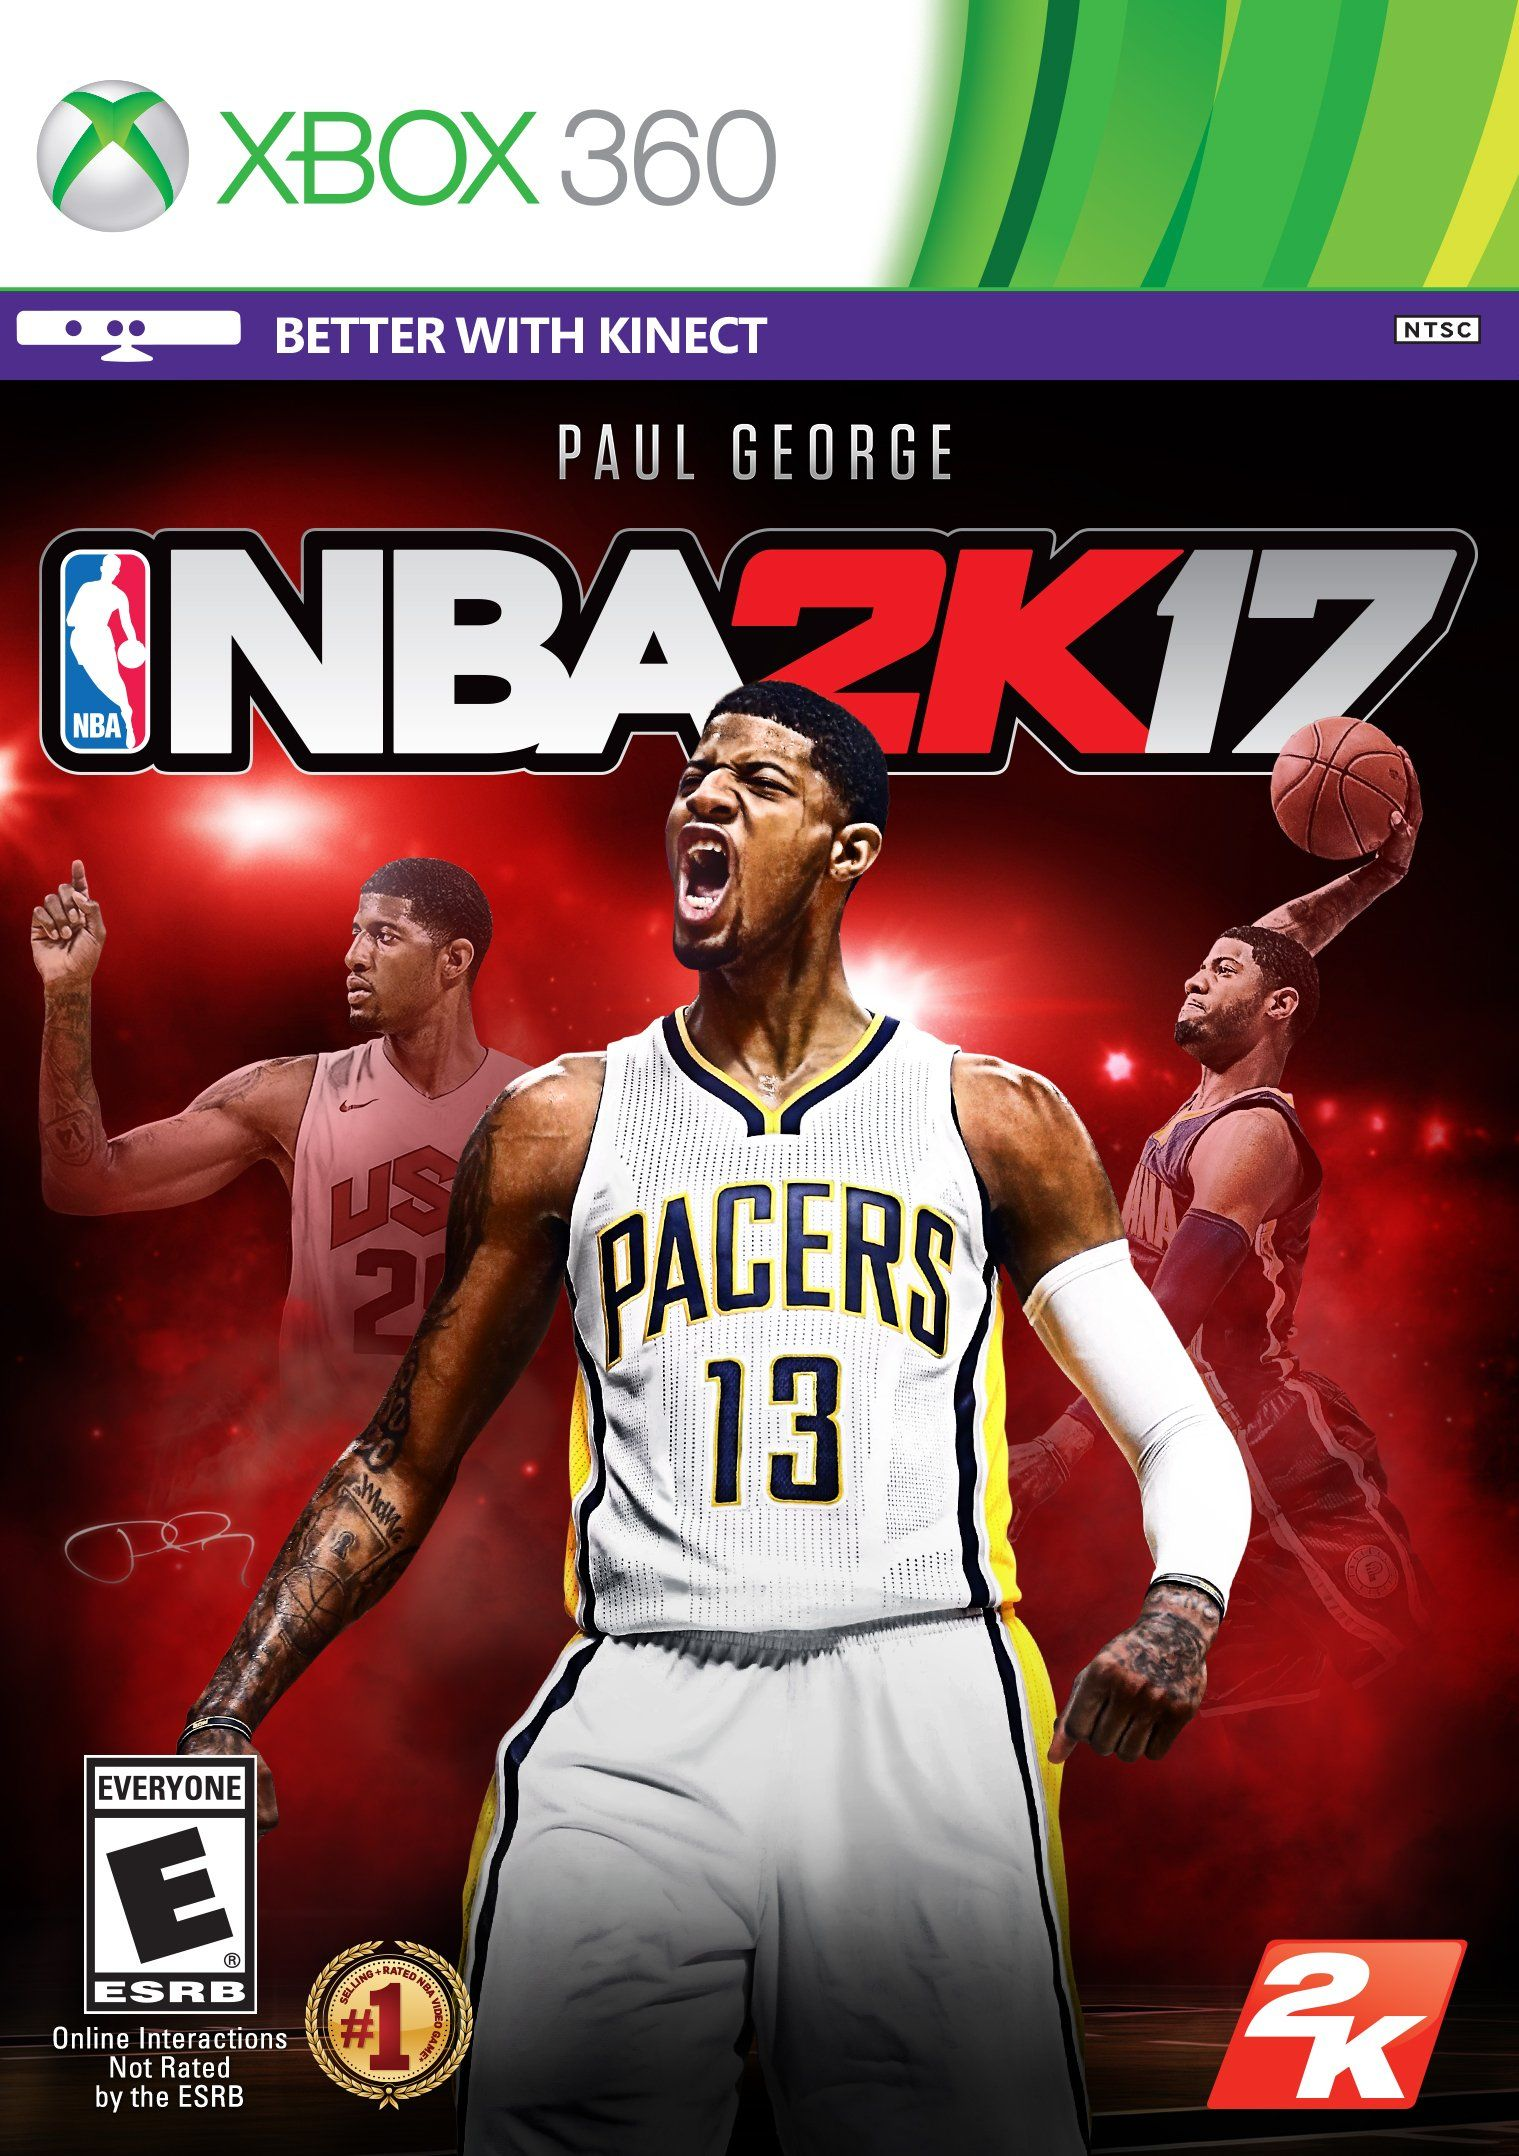 NBA 2K17 Release Date (Xbox 360, PS3, Xbox One, PS4)